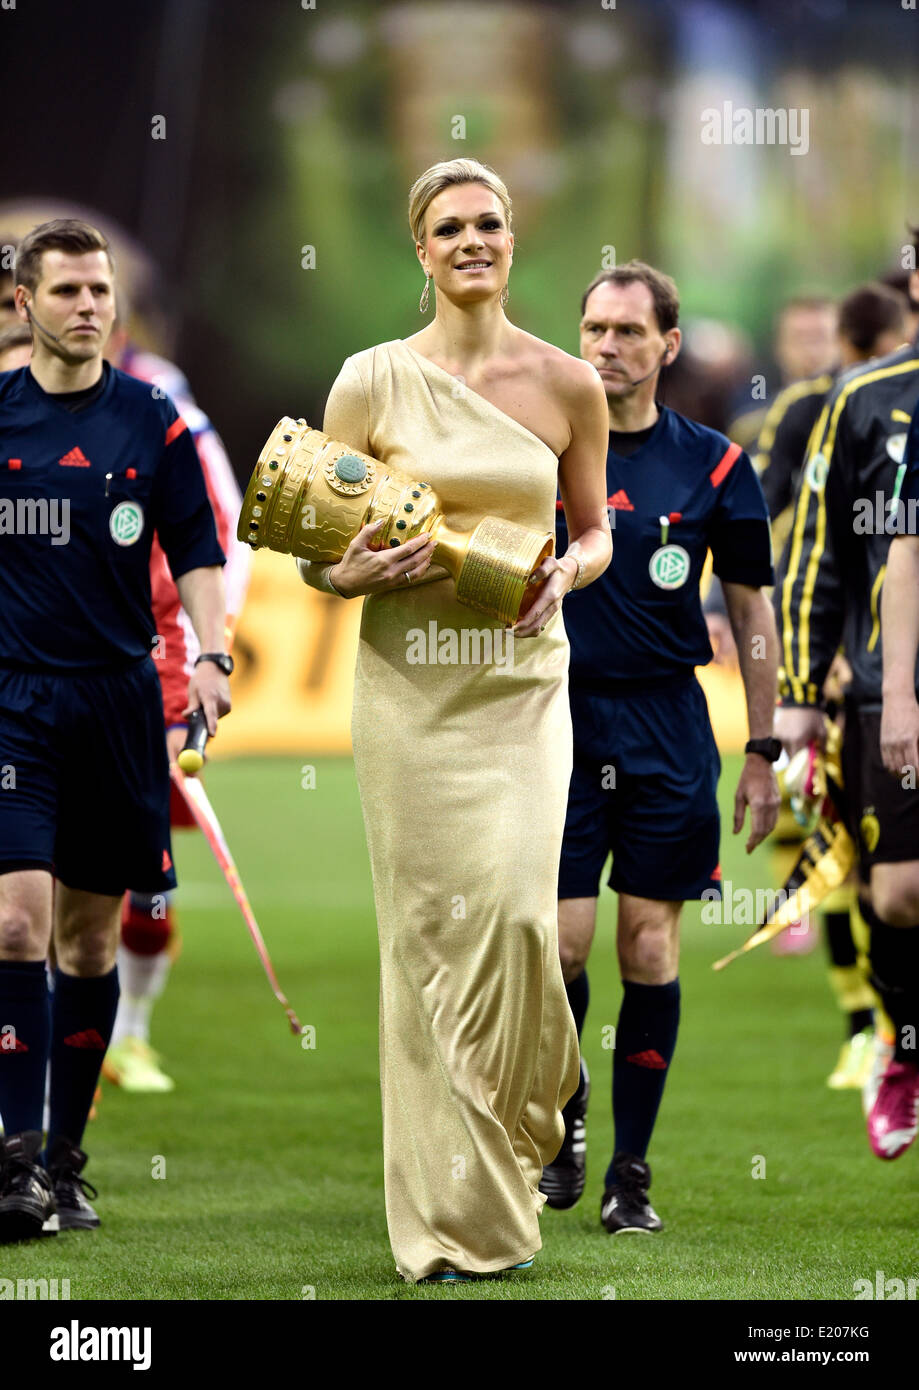 Maria Höfl-Riesch carries the DFB Cup into the stadium, opening ceremony, DFB Cup final, Olympiastadion, Berlin, - Stock Image